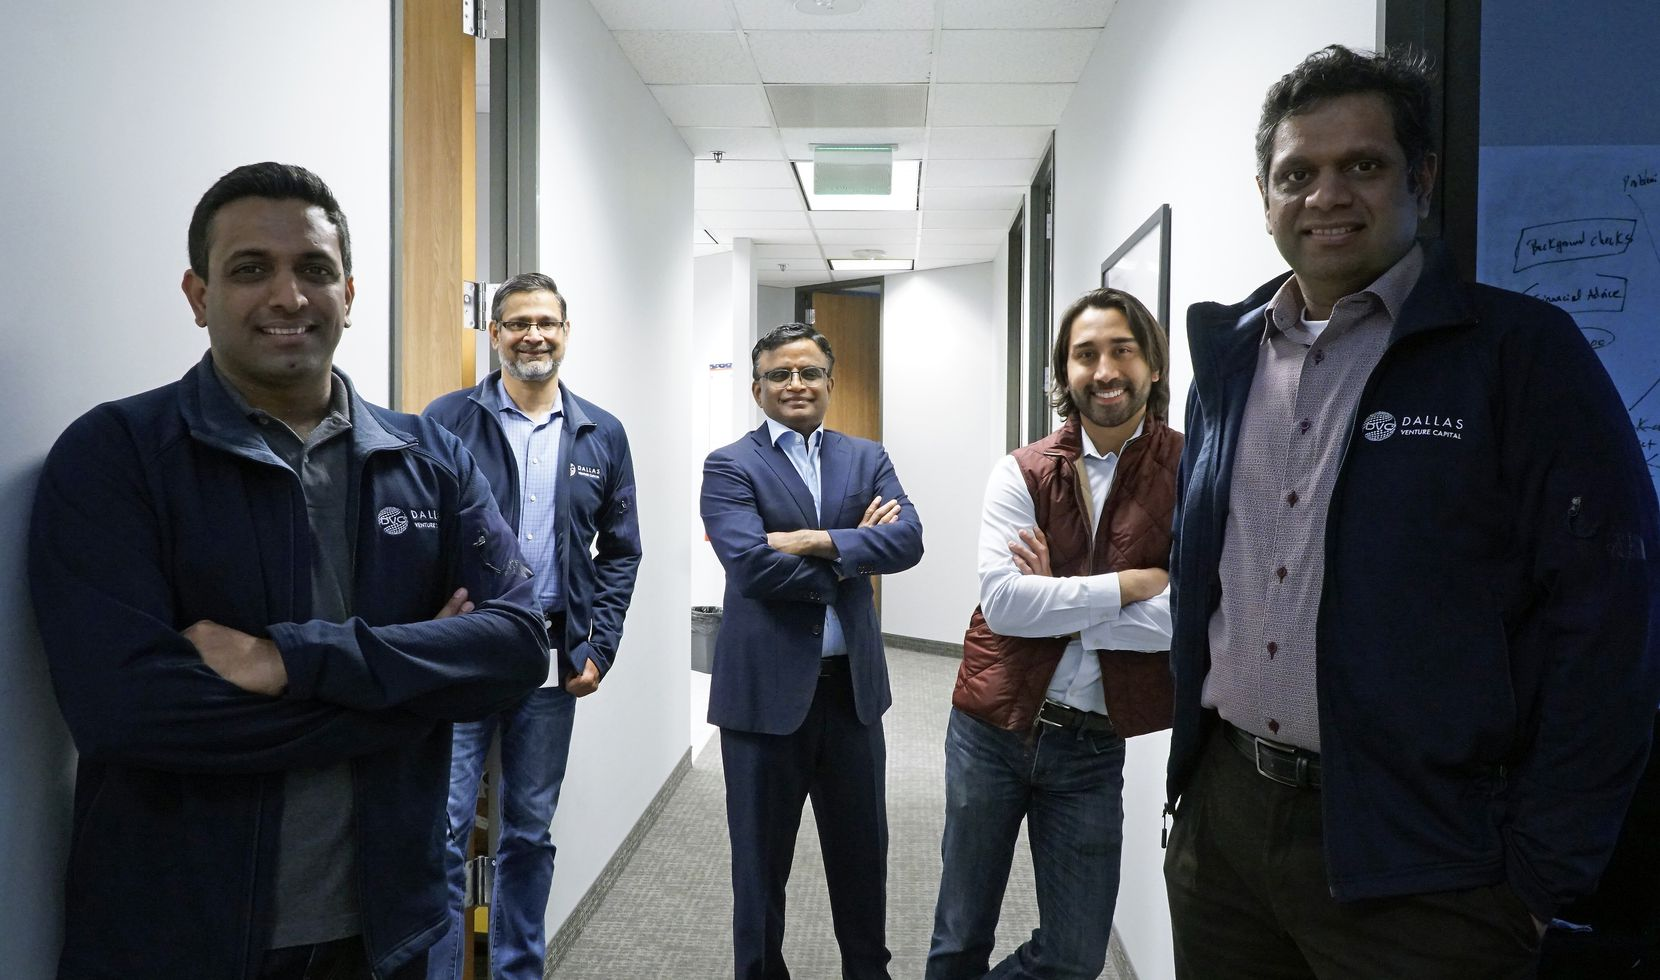 The Dallas Venture Capital team in Irving (from left): Venkat Kolli, Abidali Neemuchwala, Dayakar Puskoor, Manu Sharma and Adhavan Manickam. The firm also has an office and staff in India.